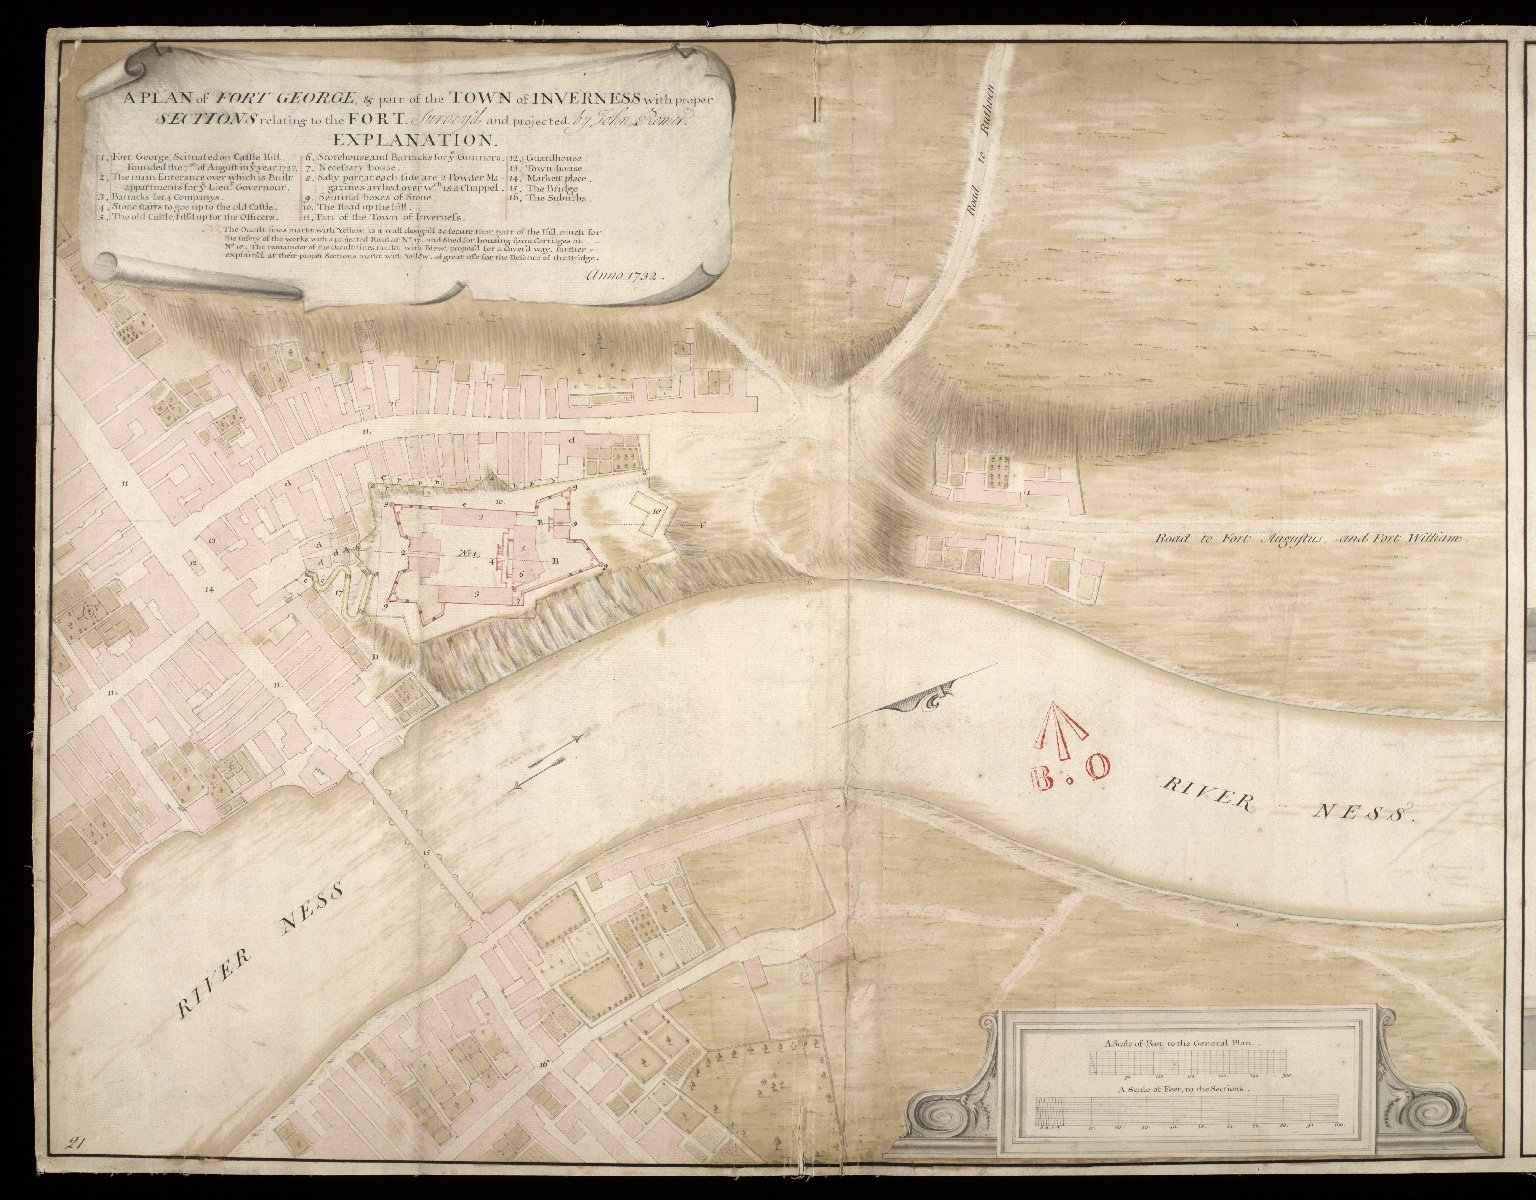 A Plan of Fort George, & part of the town of Inverness : with proper sections relating to the fort anno 1732 [1 of 2]